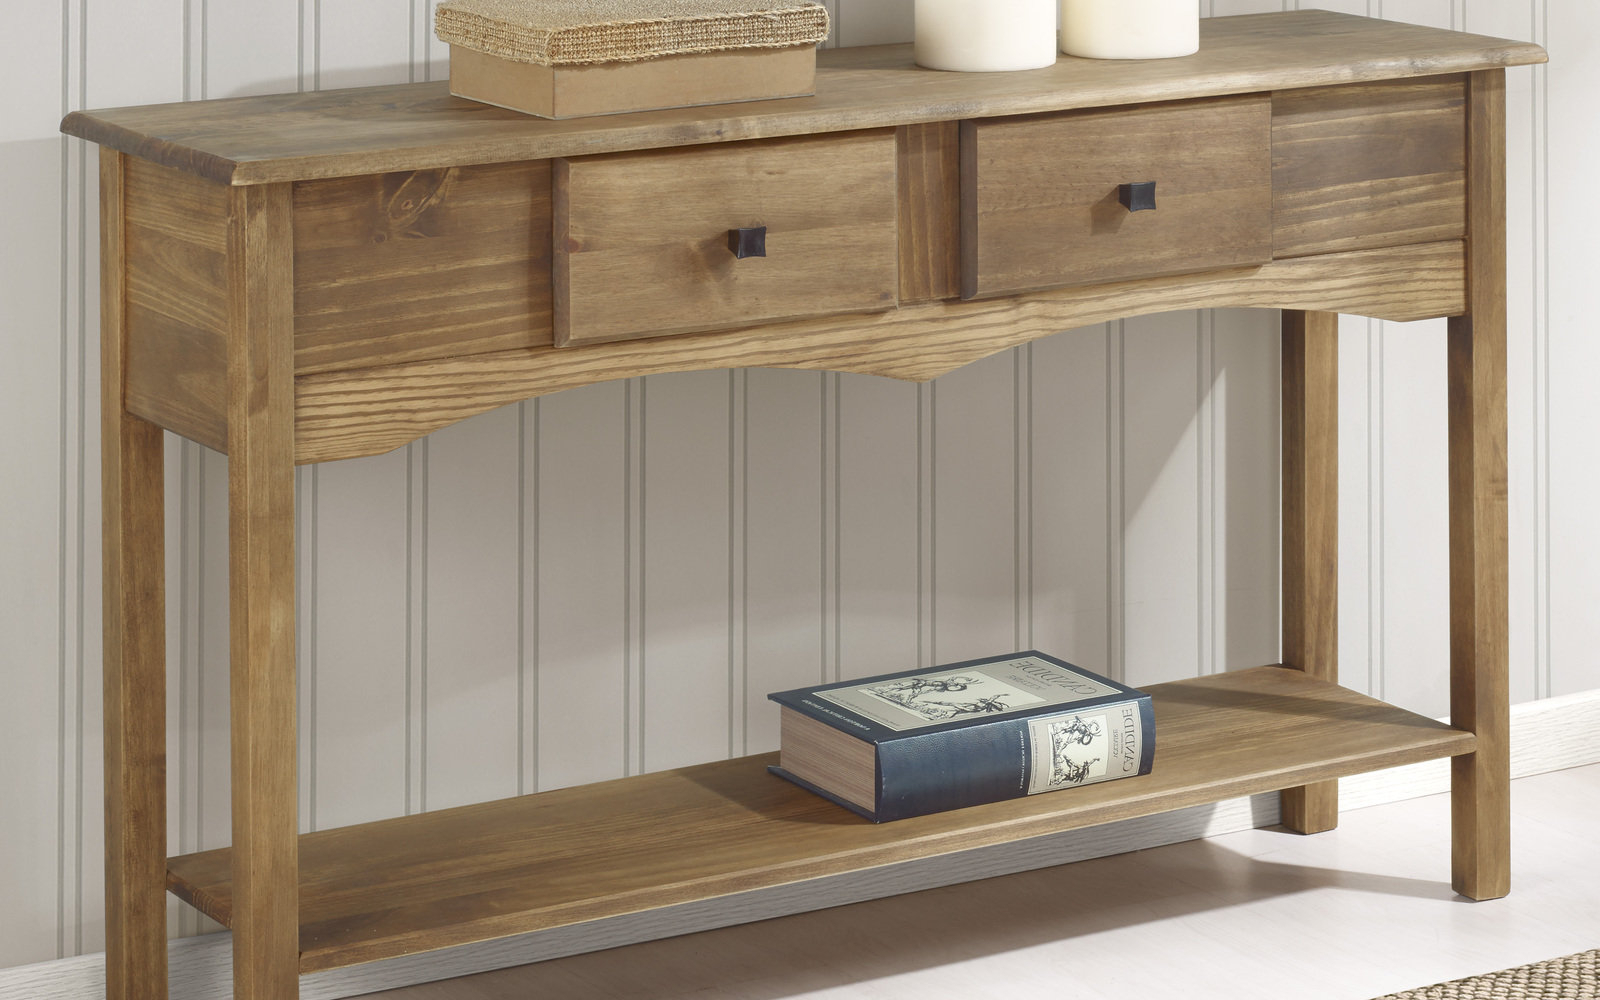 Wayfair Intended For Widely Used Yukon Natural Console Tables (View 15 of 20)